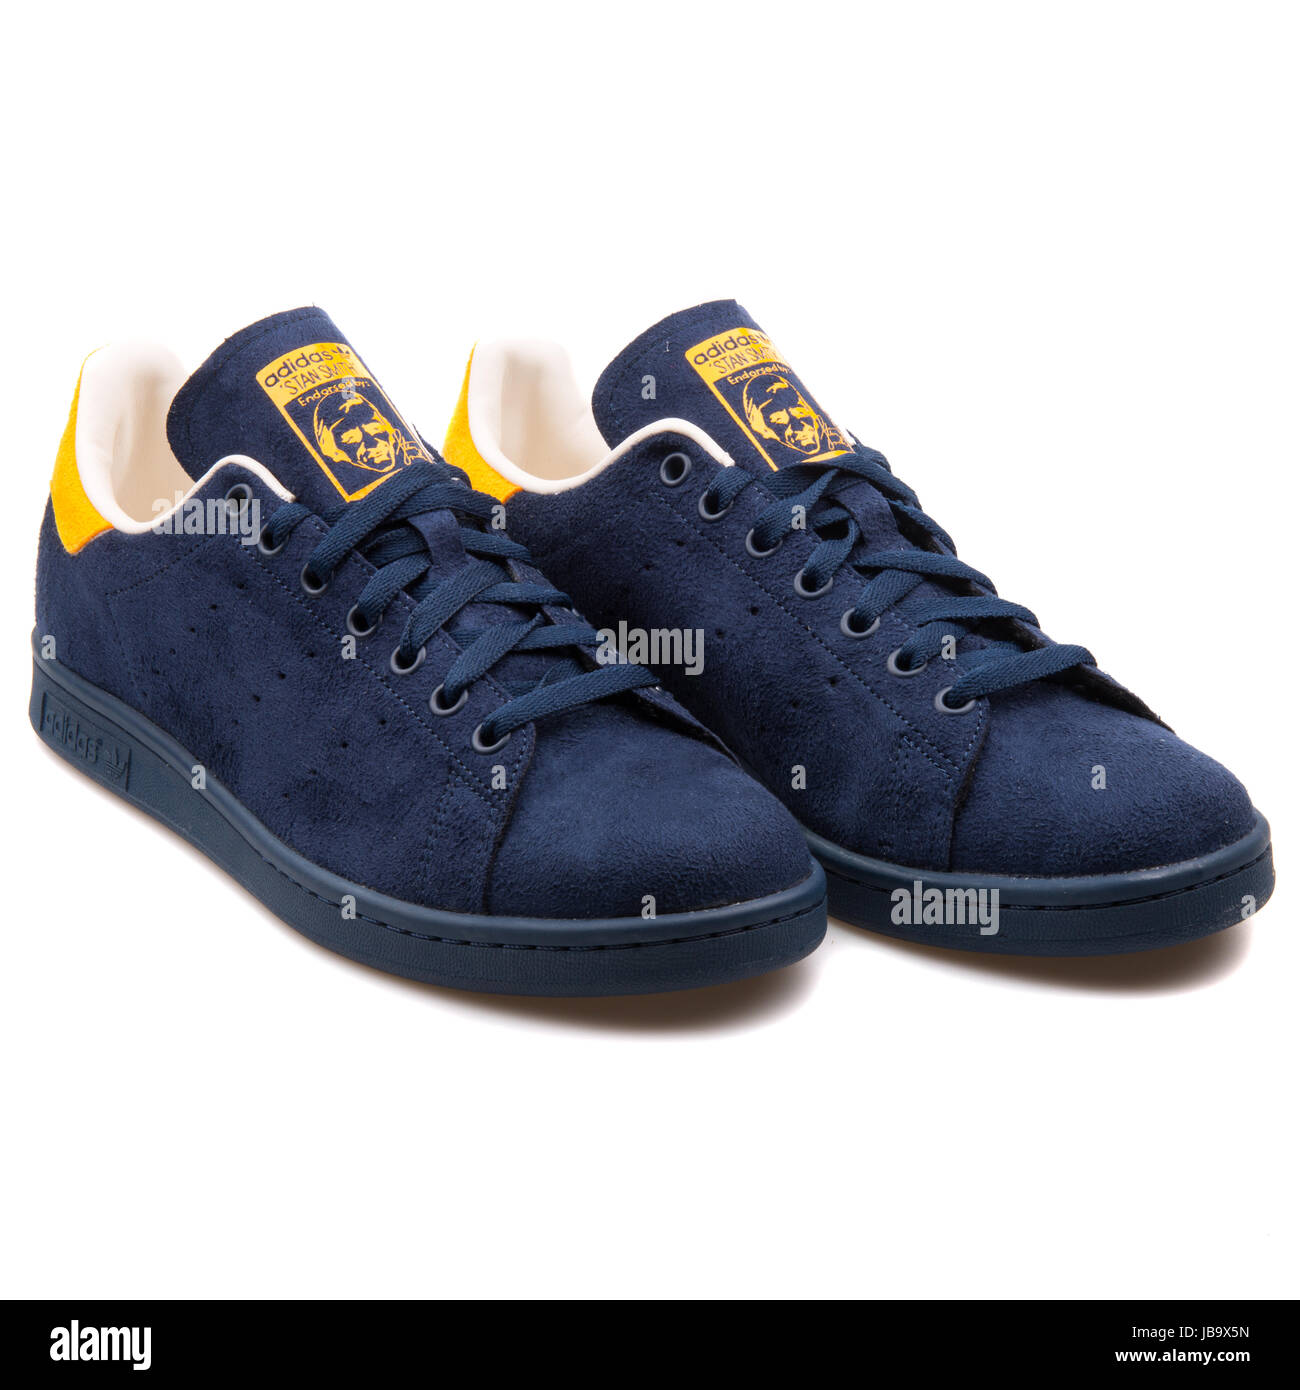 4052aa361da2 Adidas Stan Smith Navy Blue and Yellow Men s Sports Shoes - B24707 ...